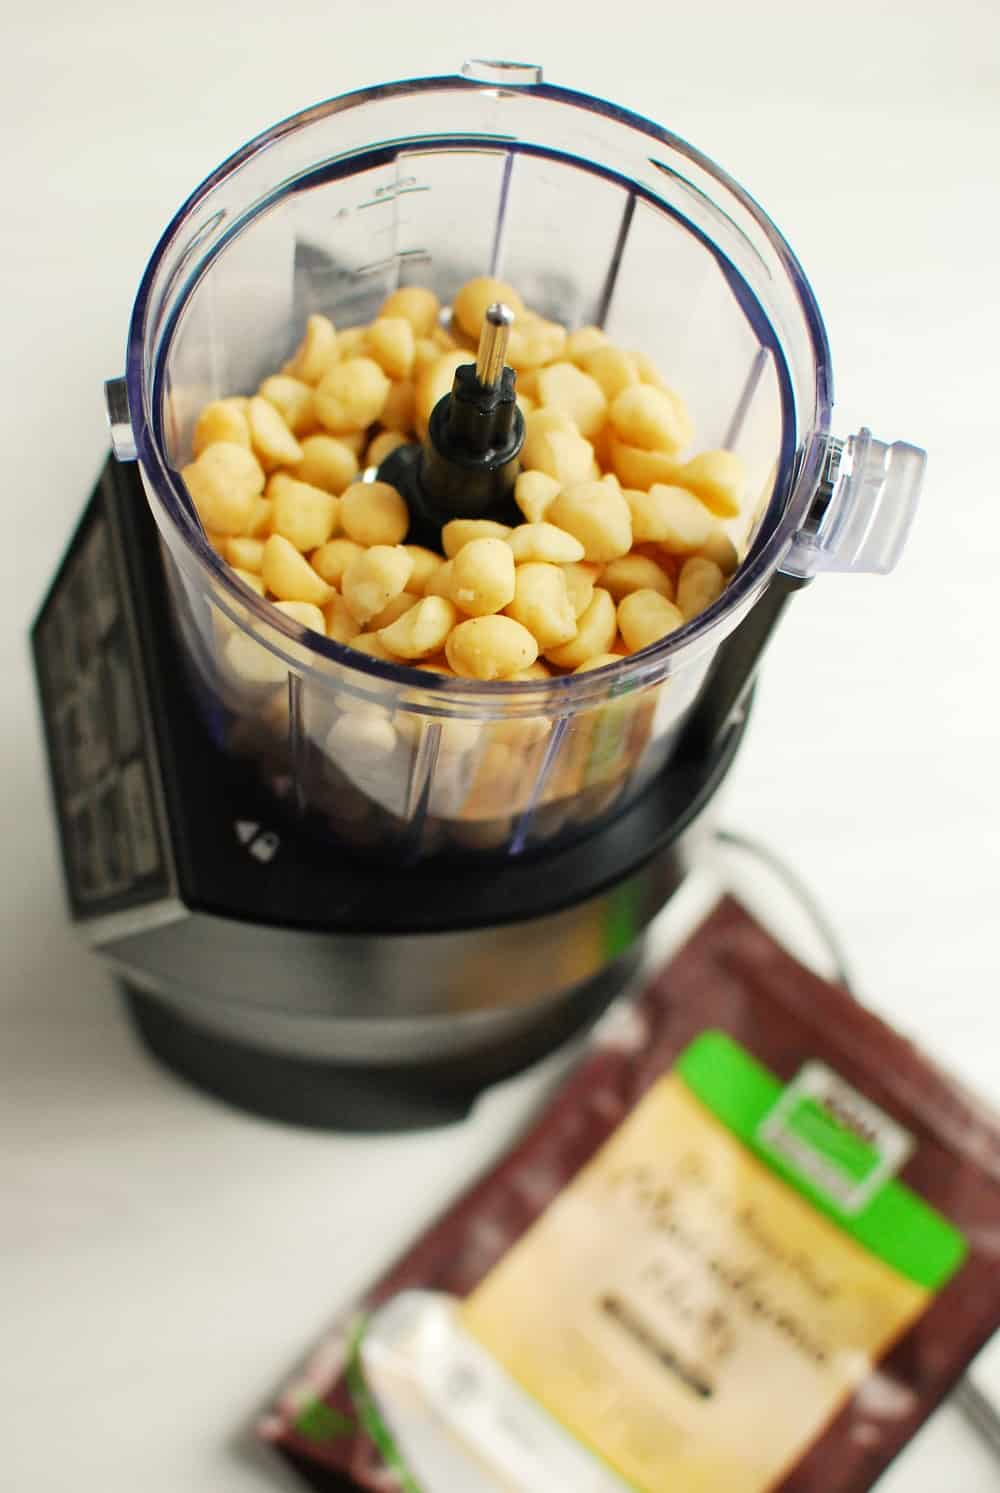 A food processor full of macadamia nuts